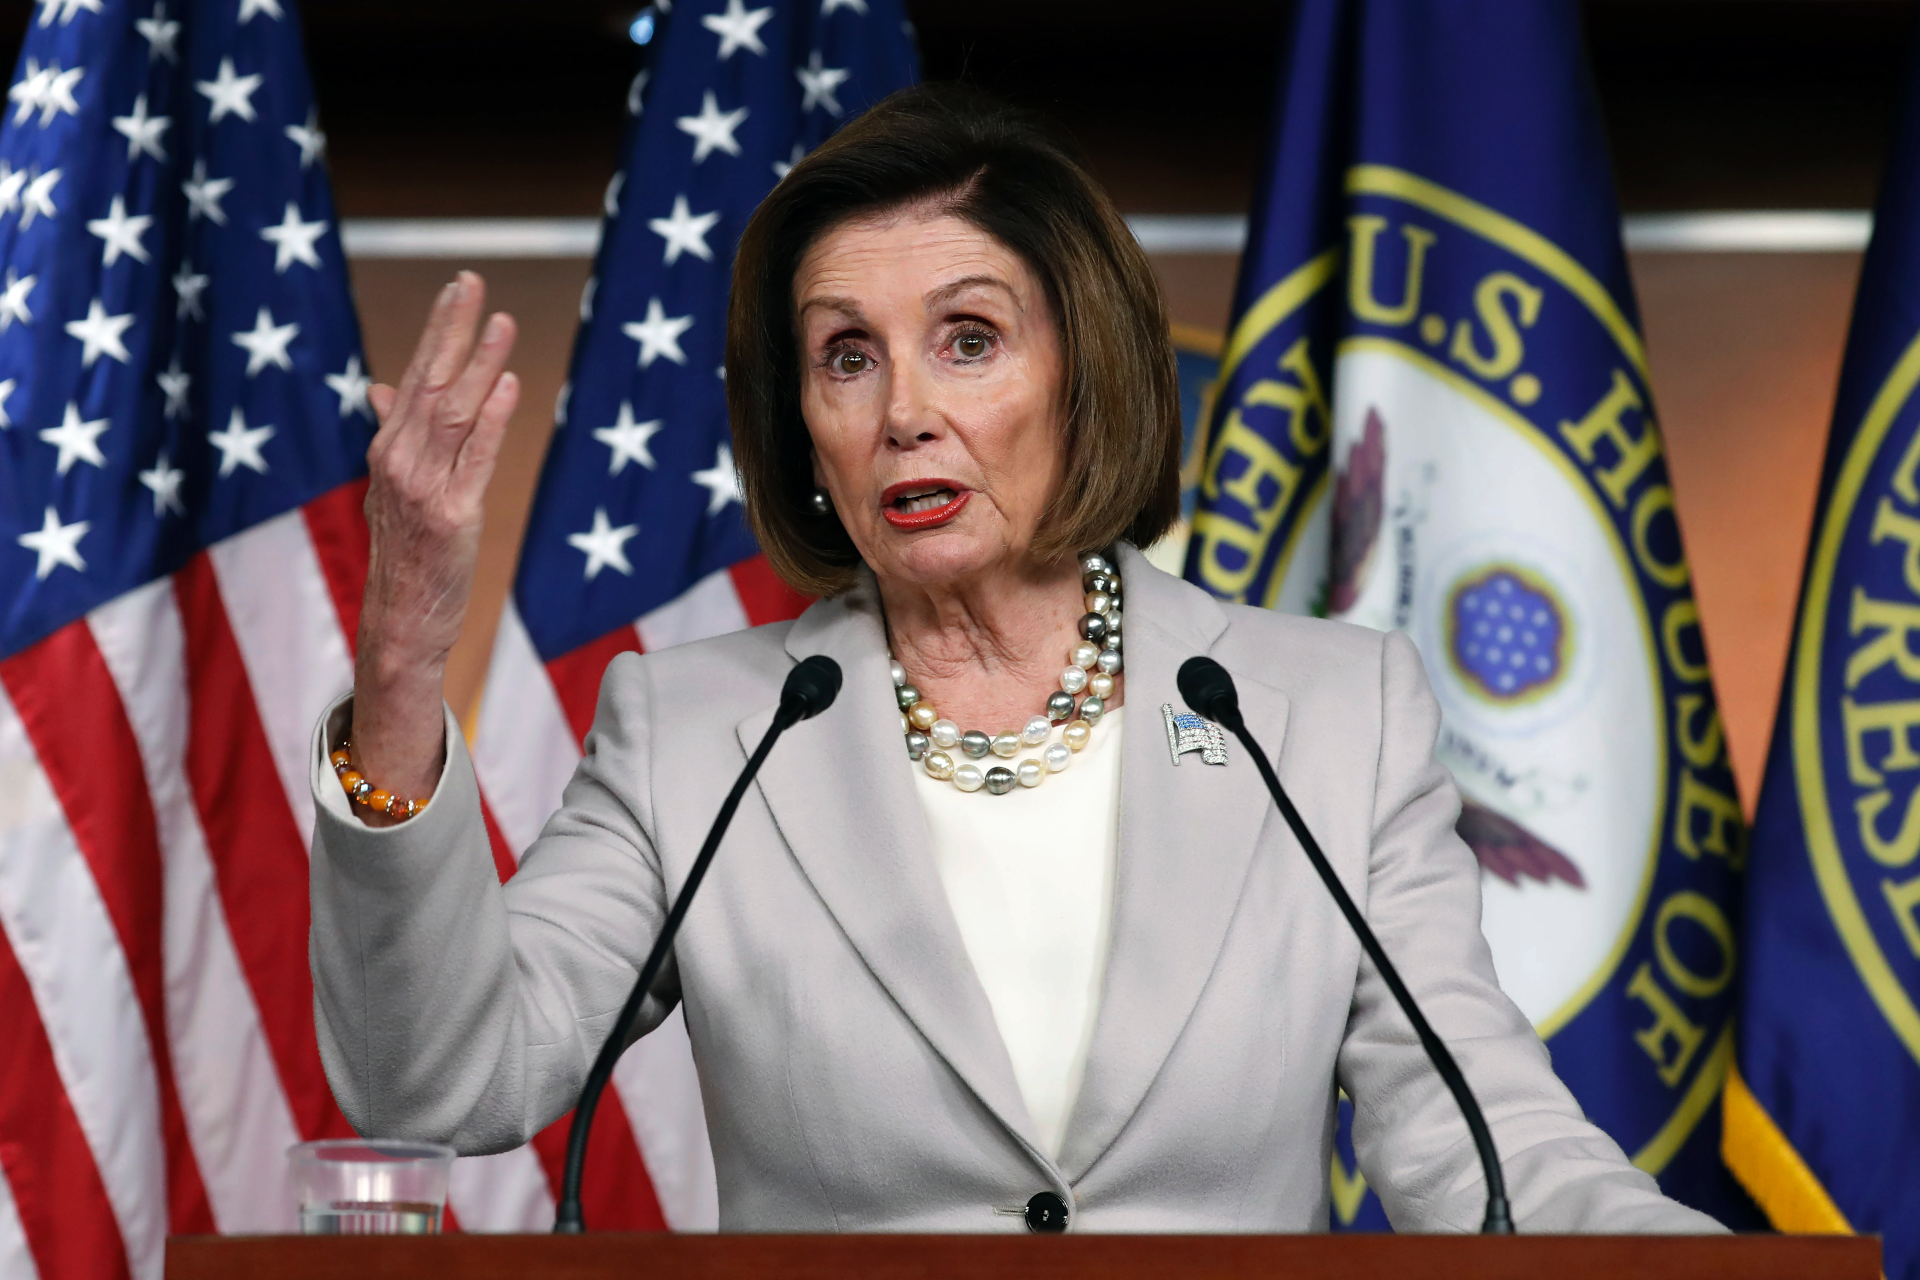 Is Nancy Pelosi holding up major U.S. trade deal over politics? Expert panel debates